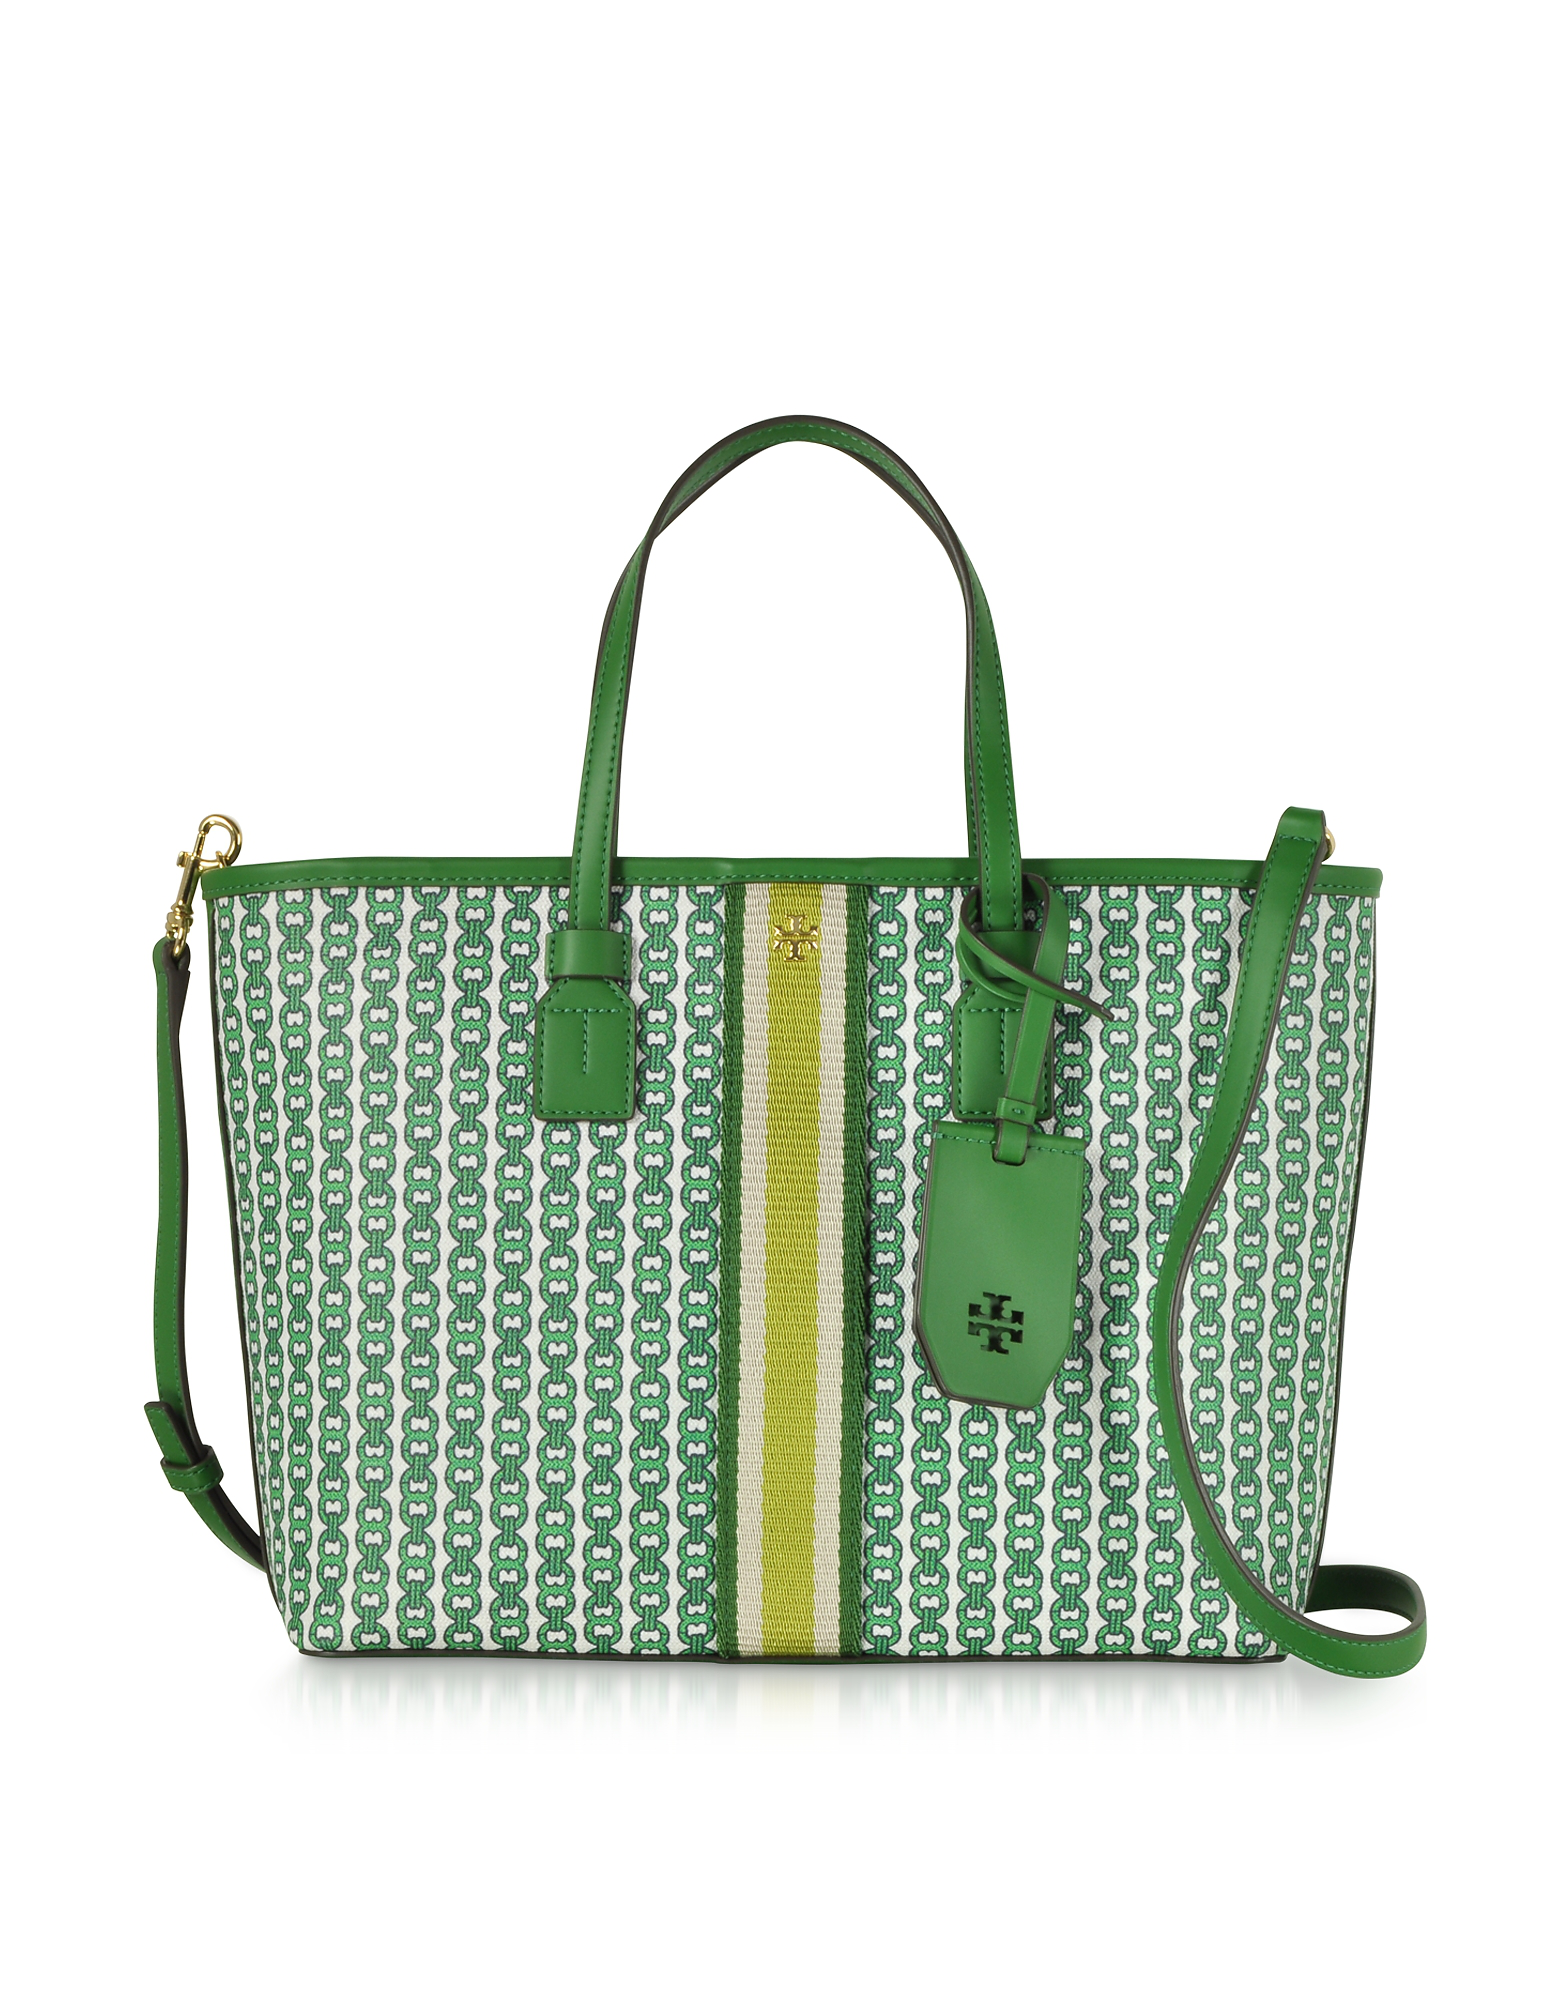 bf29599d9 Tory Burch Gemini Link Coated Canvas Small Tote Bag In Dark Green ...